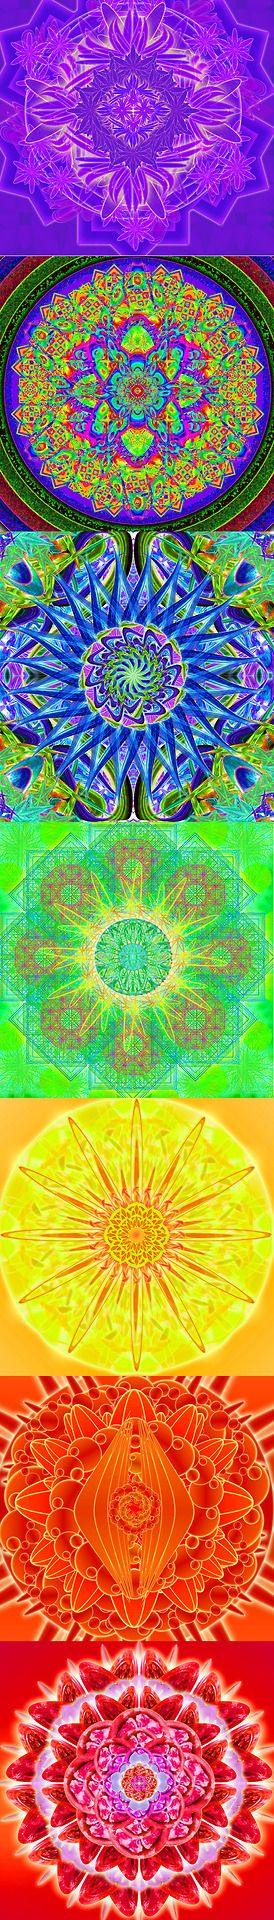 ^7 Chakra Mandala to Heal all your Chakras